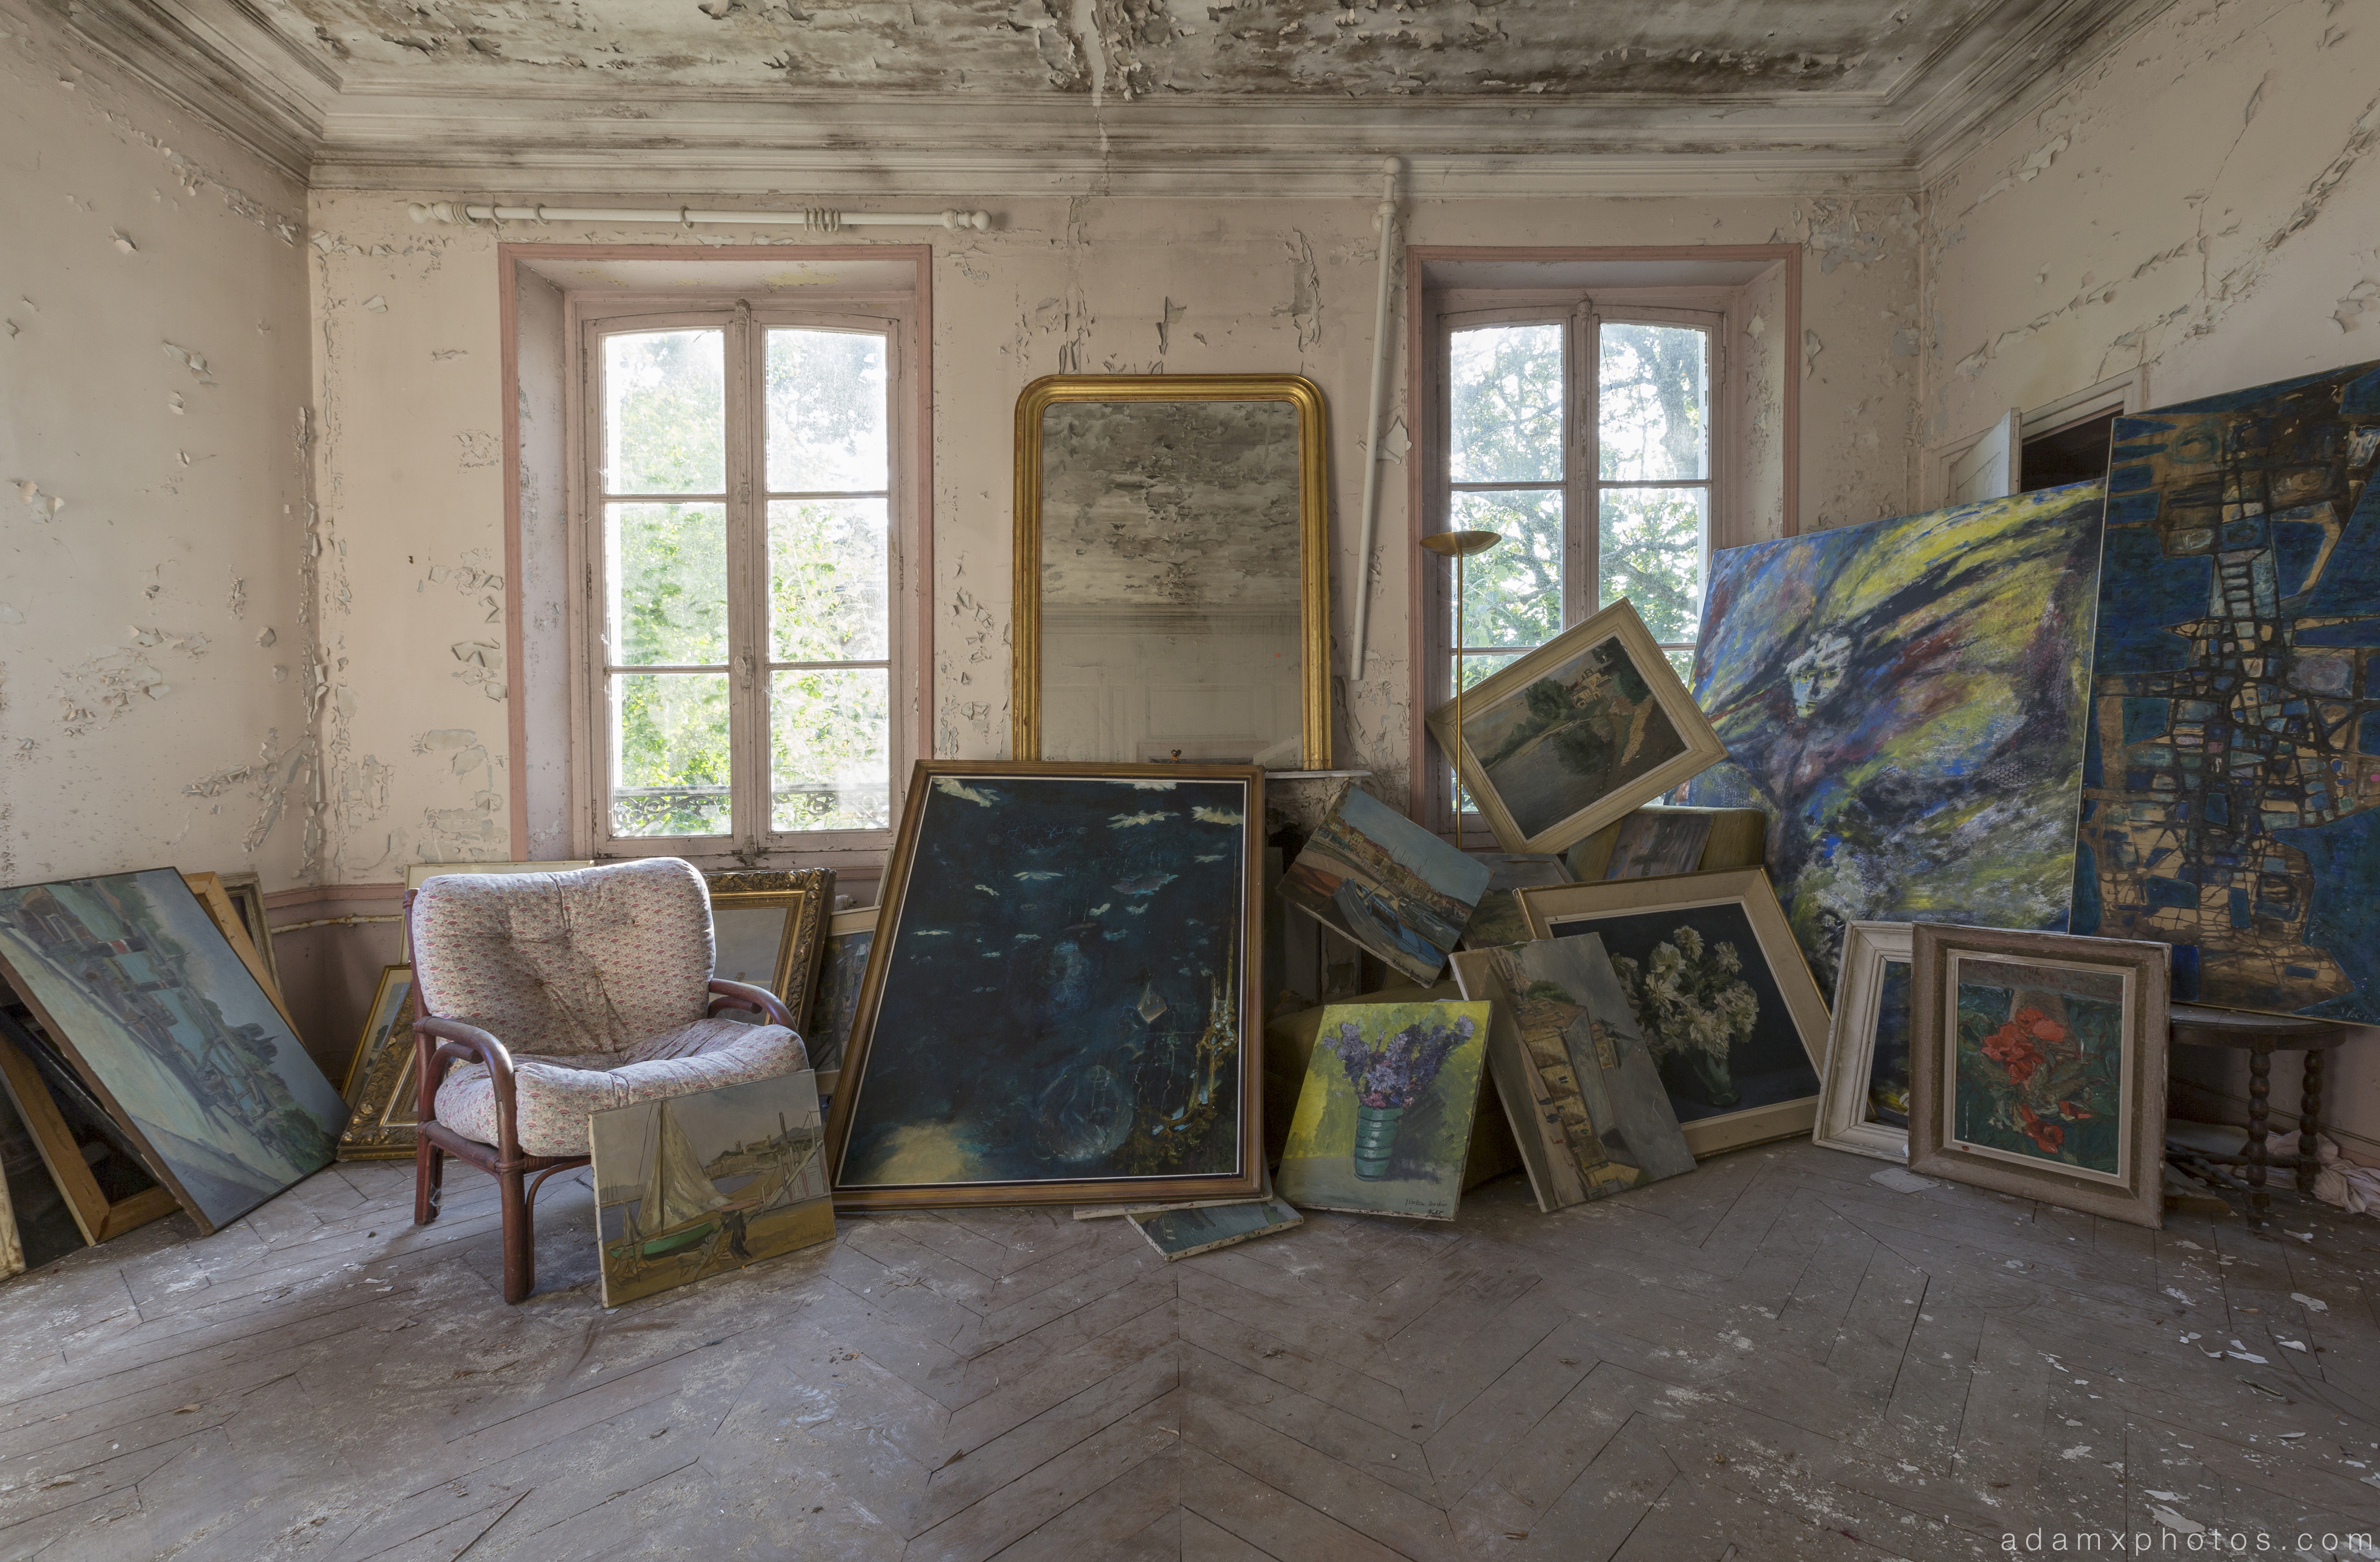 Art room Paintings Chateau Cacophonie Manoir Musique Music was my first love France Urbex Adam X Urban Exploration 2015 Abandoned decay lost forgotten derelict